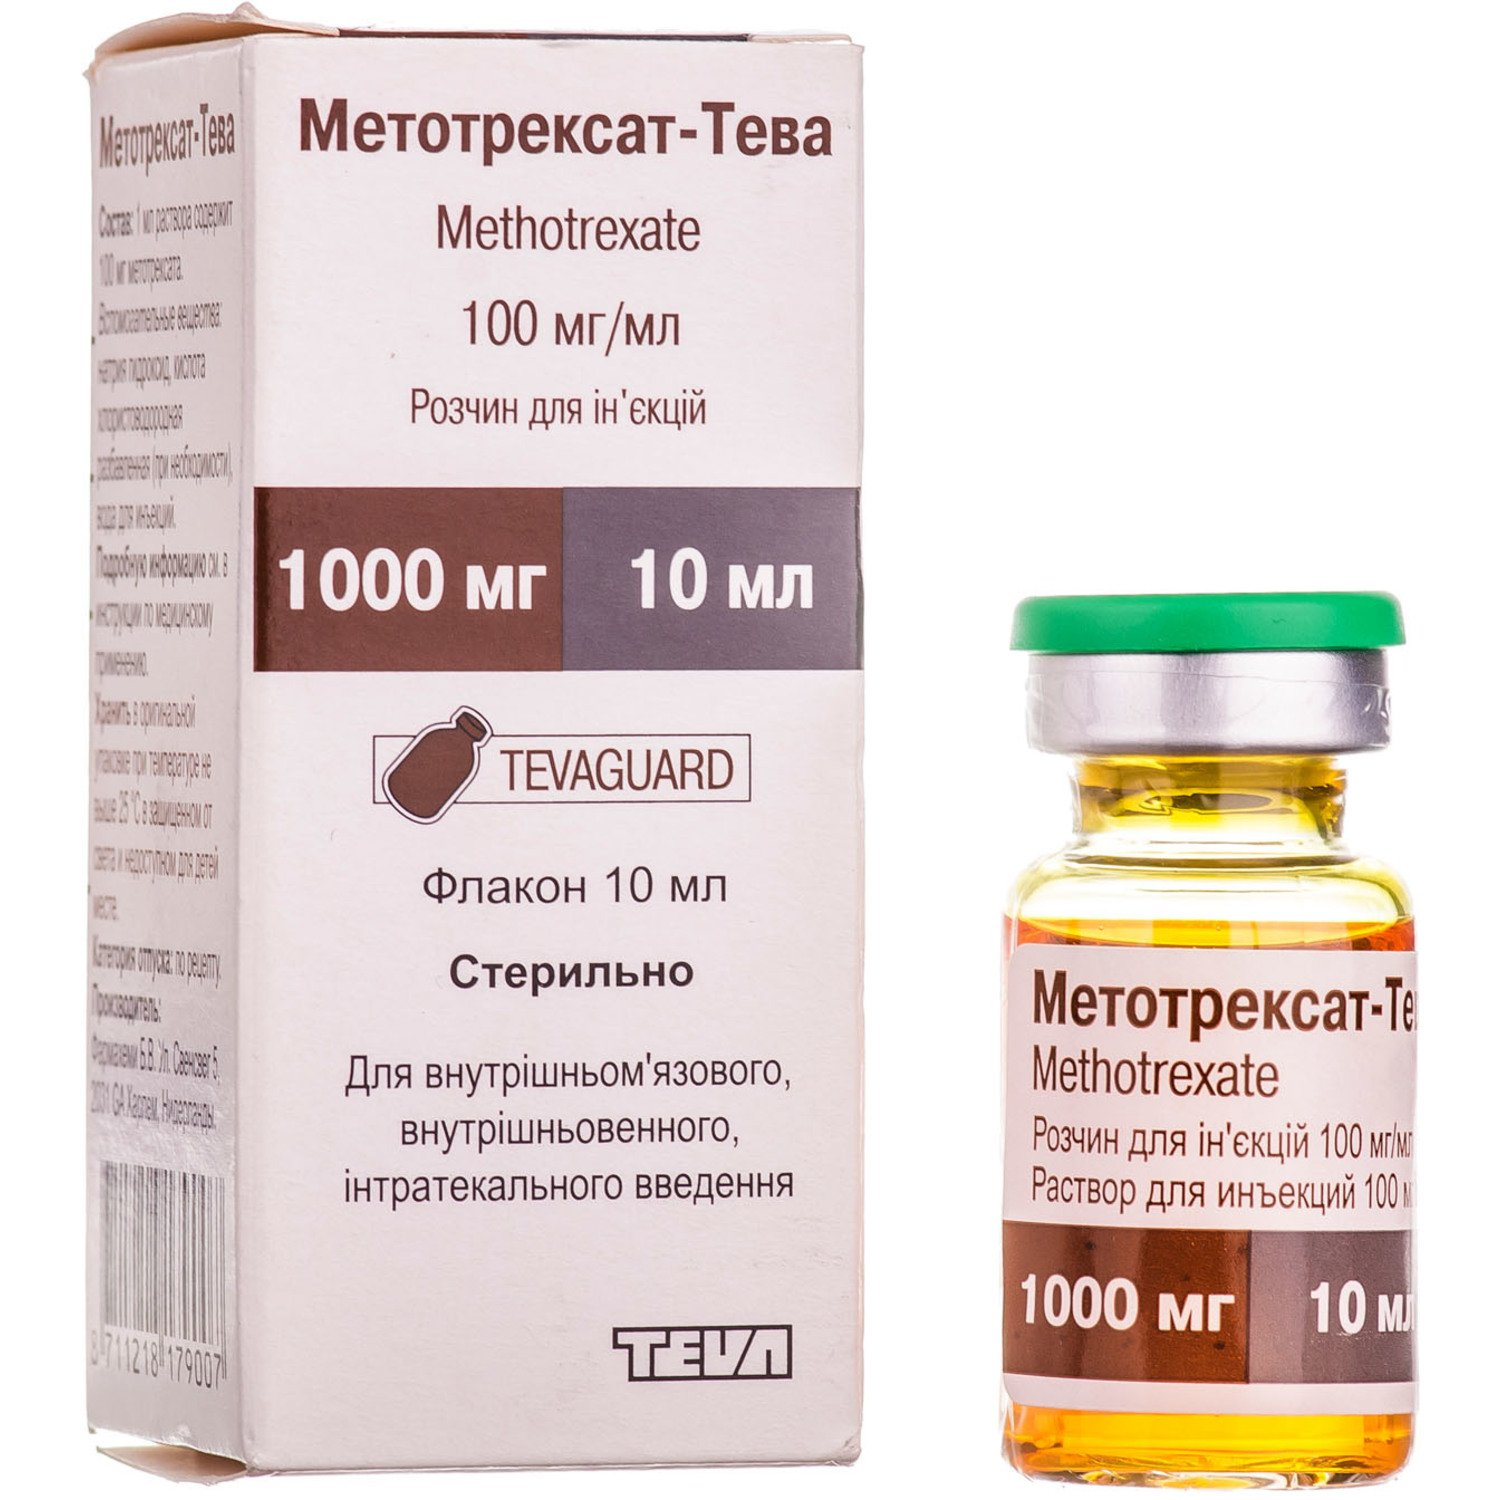 Metotrexat-TEVA (methotrexate) solution for injections 100 mg/ml. 10 ml. №1 vial